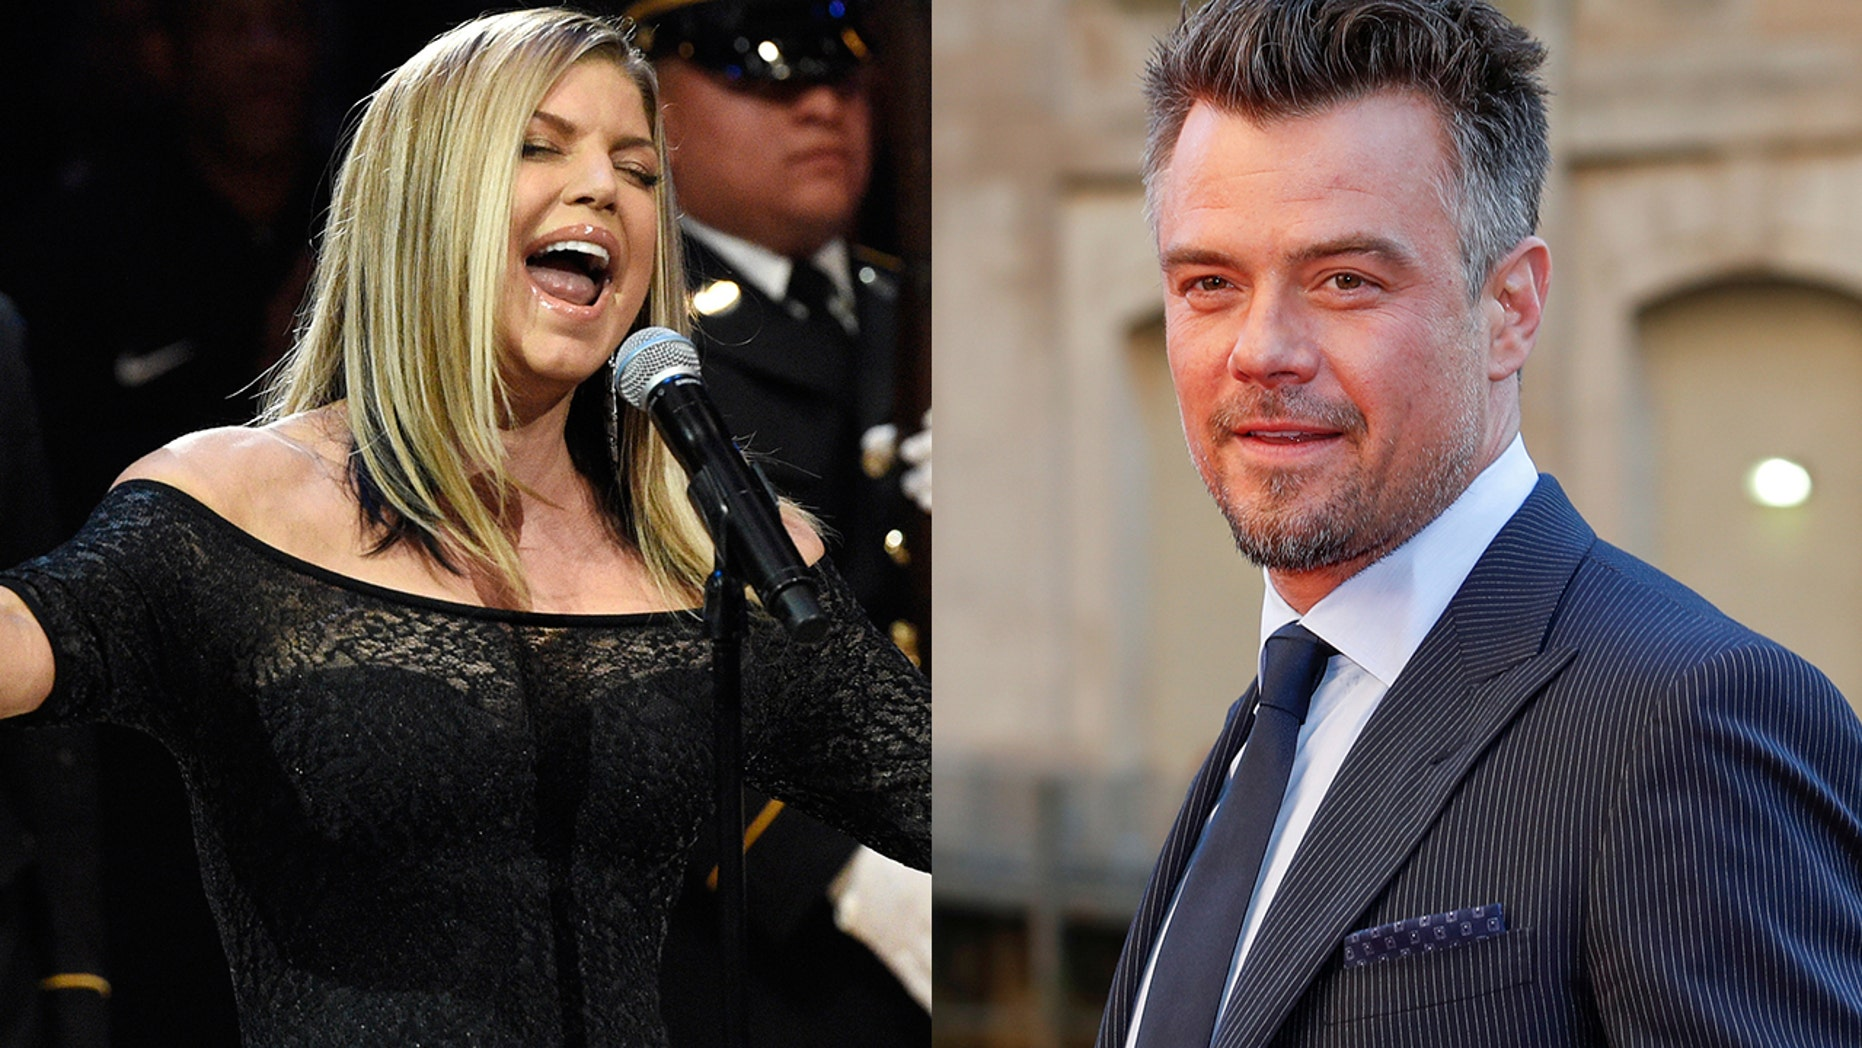 Josh Duhamel, right, defended his ex-wife Fergie's sultry performance of the national anthem.